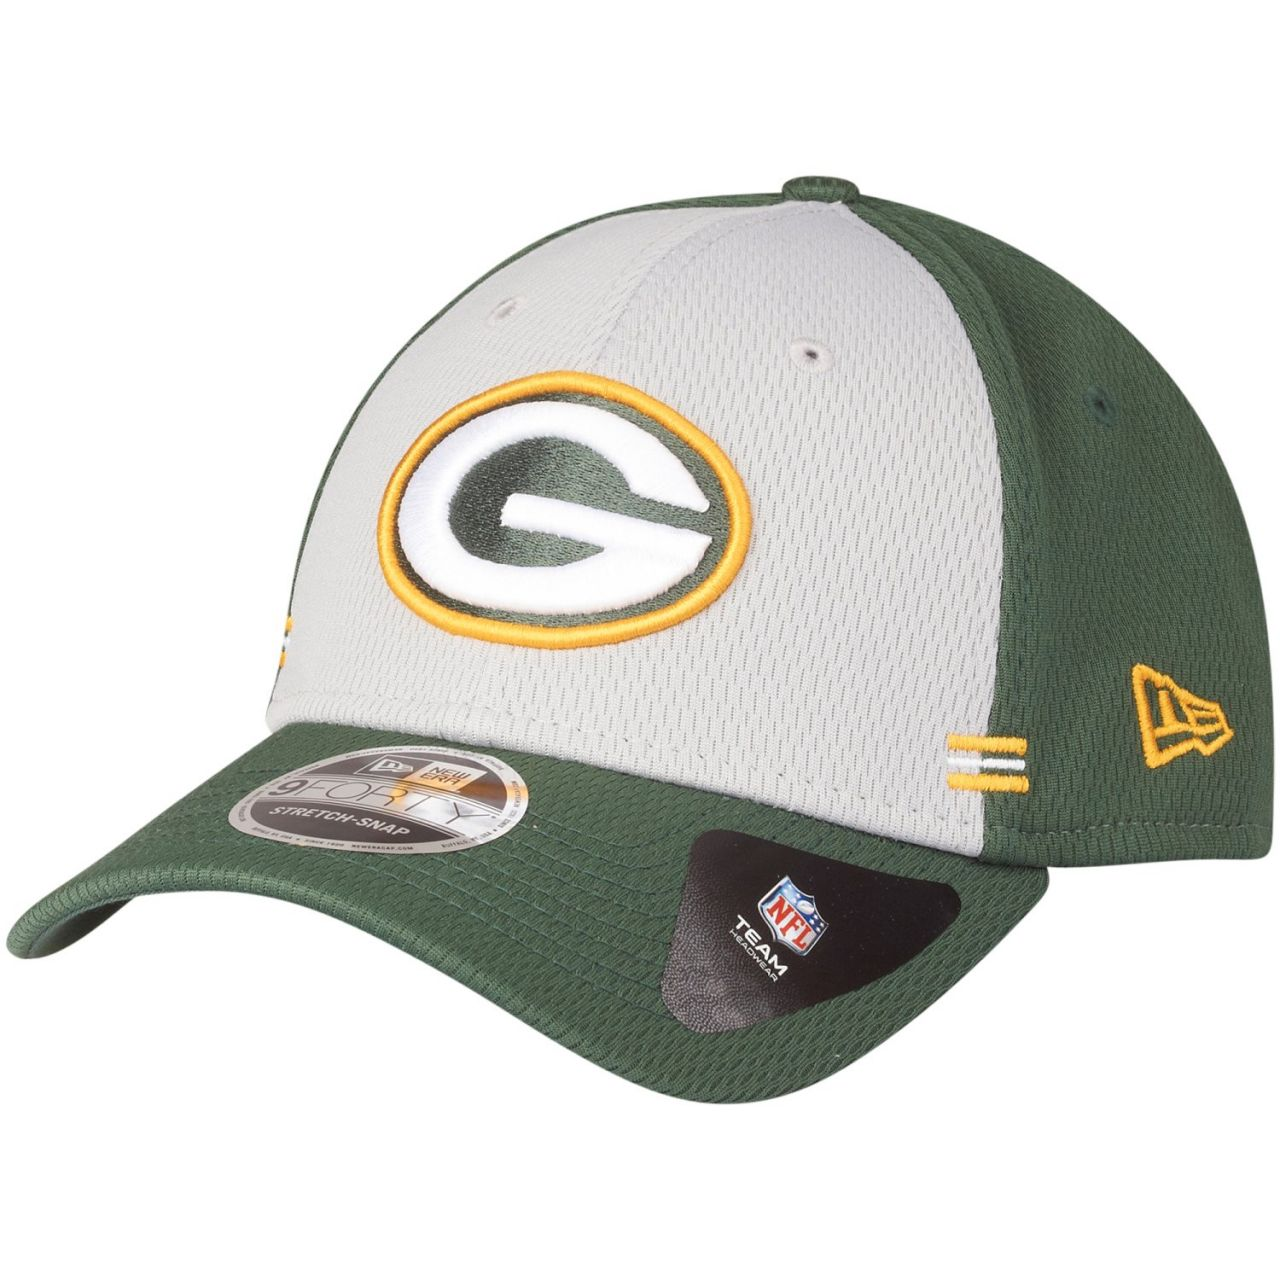 amfoo - New Era 9FORTY Stretch Snap Cap - HOMETOWN Green Bay Packers